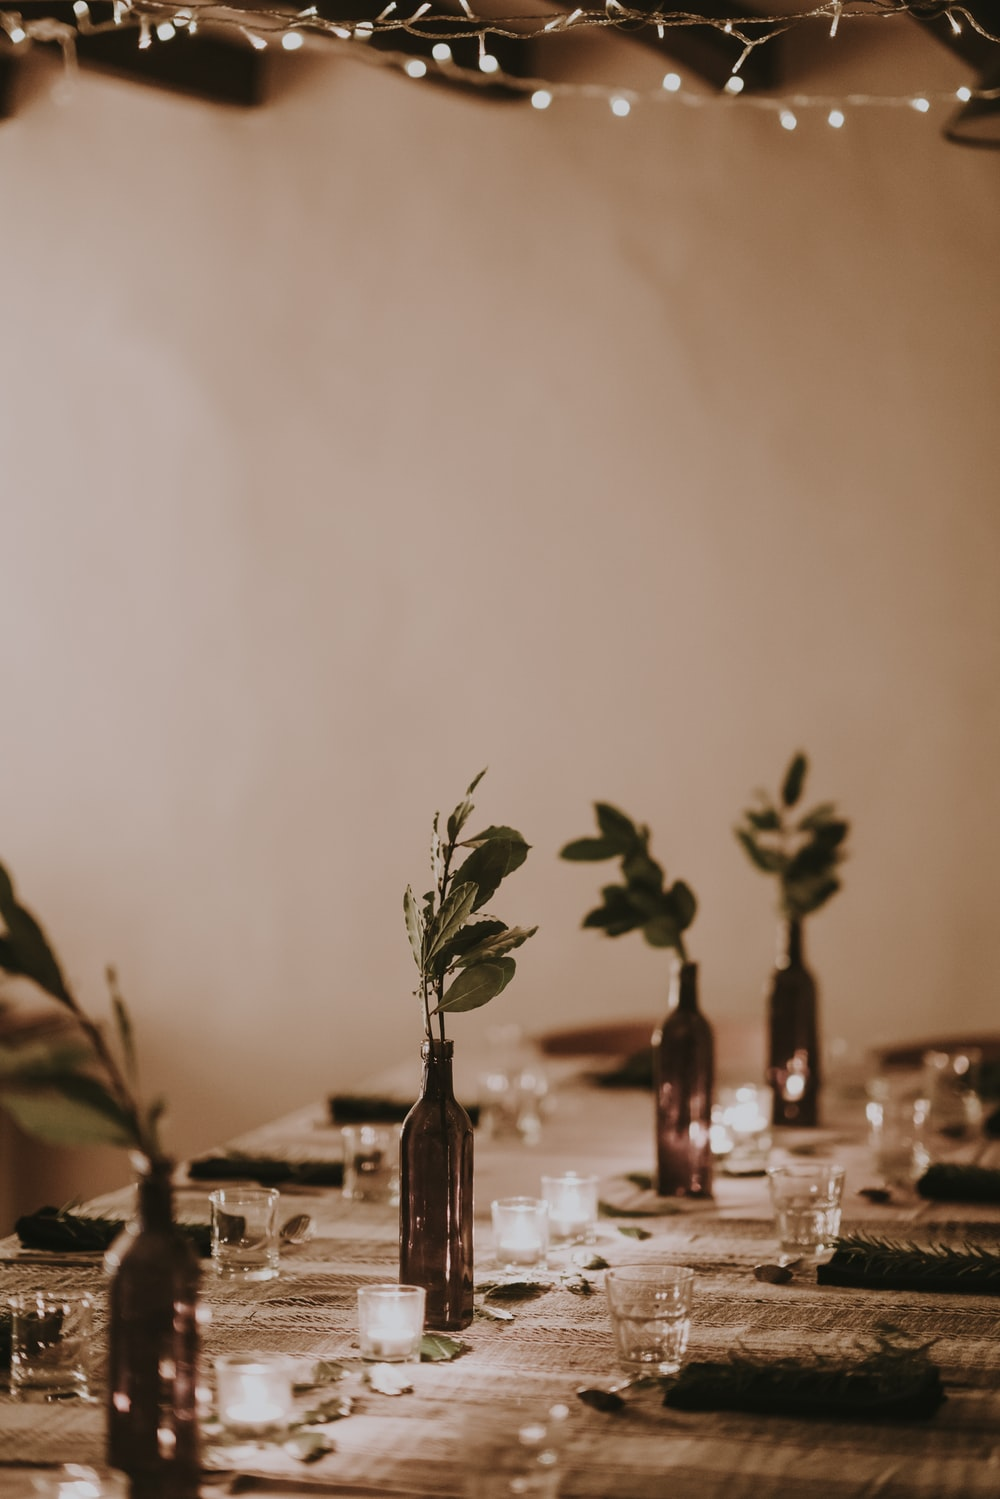 clear drinking glasses and flowers on table near wall